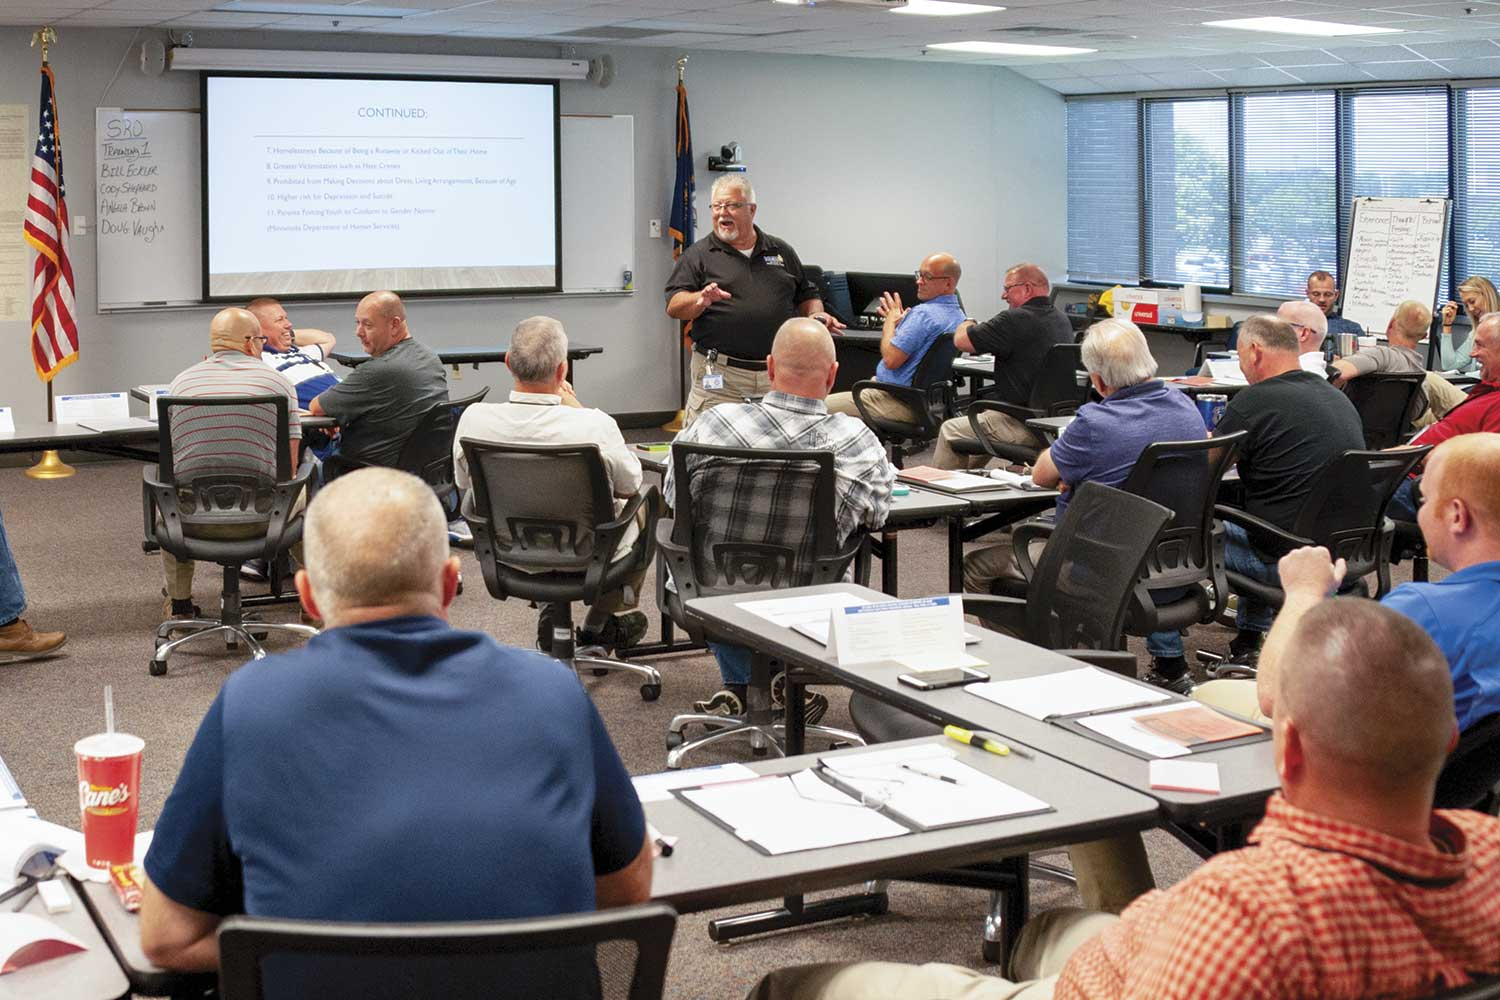 The first SRO Level I class completed training in June. There are three levels to SRO training, which are spread out over a three-year period. Once an SRO completes all three levels, they will have received 120 hours of training specific to SRO duties. (Photo by Jim Robertson)